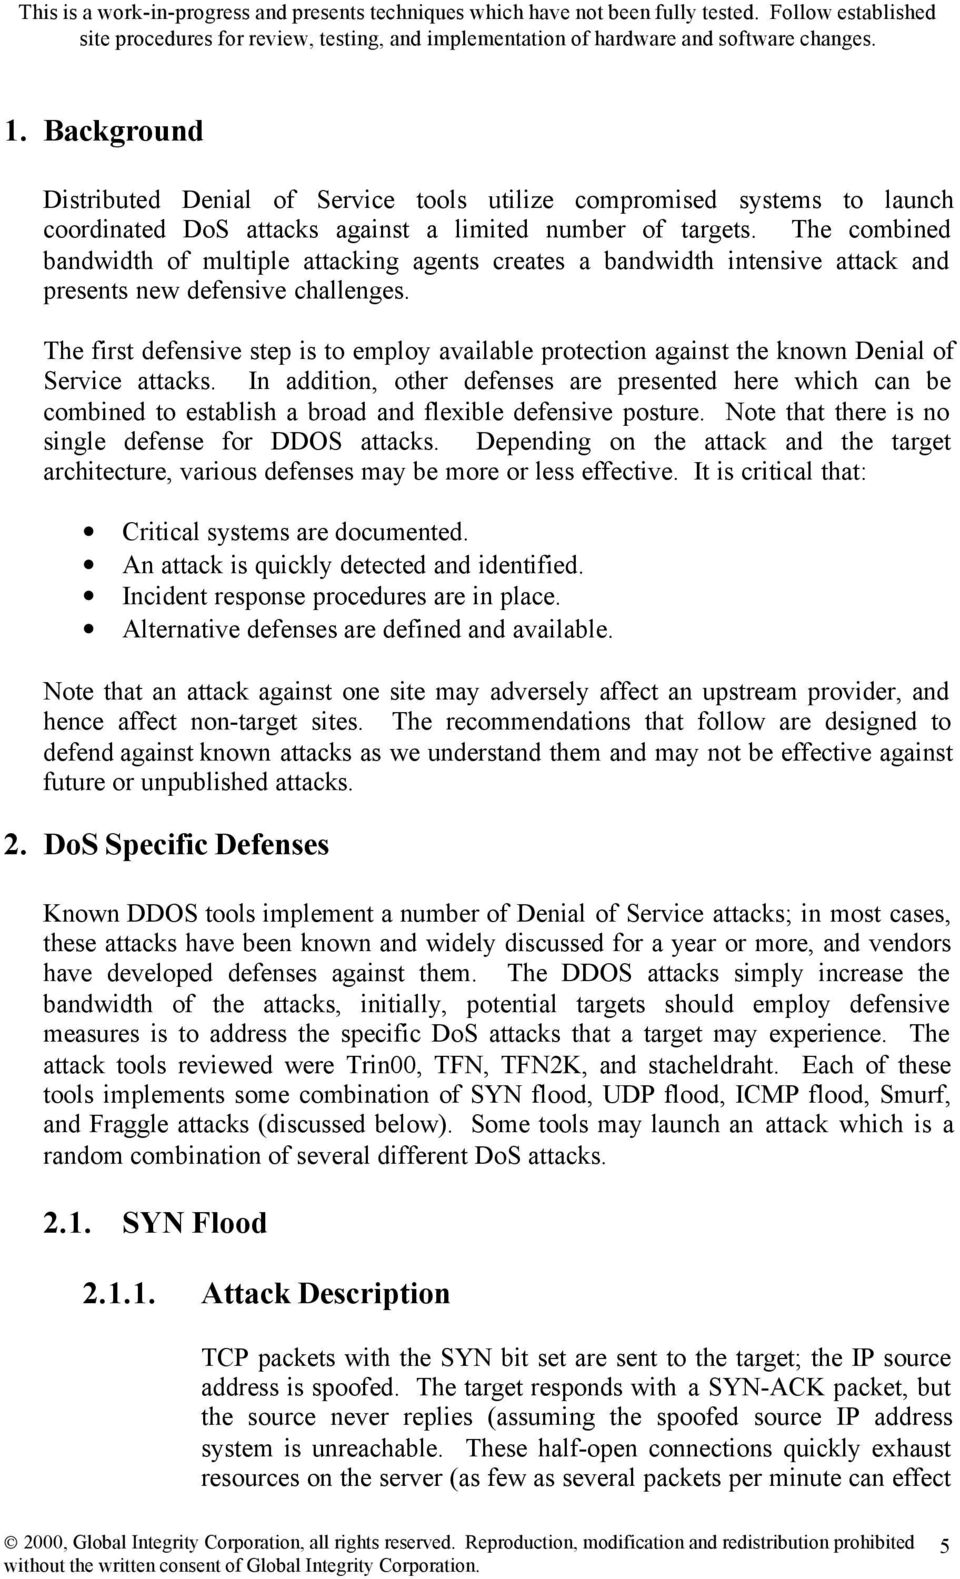 The first defensive step is to employ available protection against the known Denial of Service attacks.